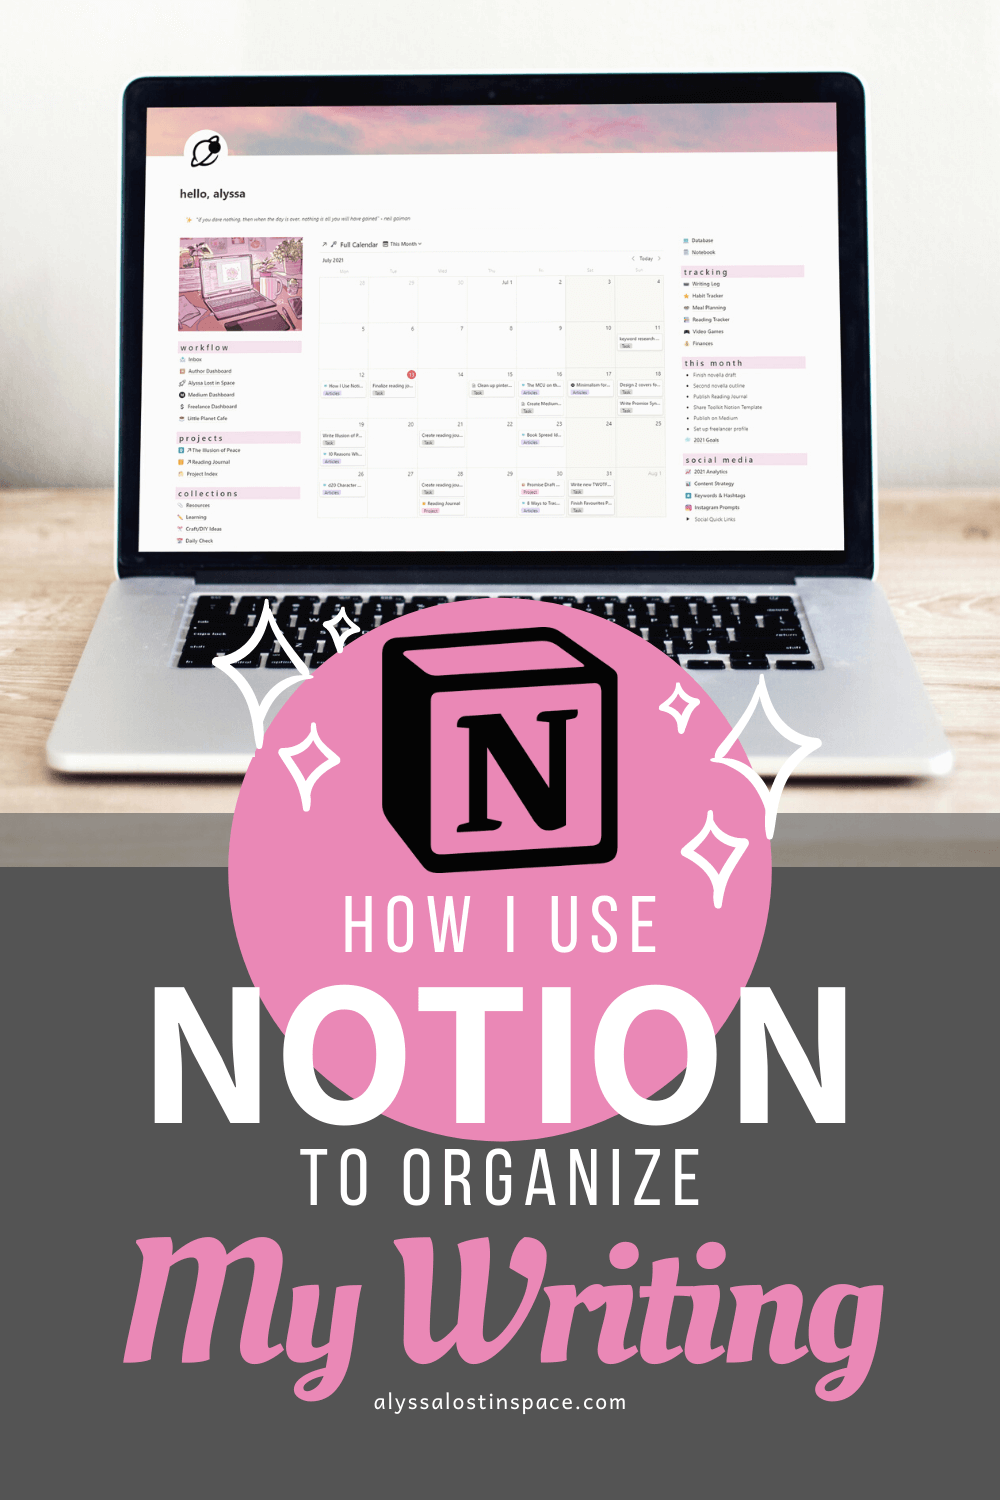 how i use notion to organize my writing